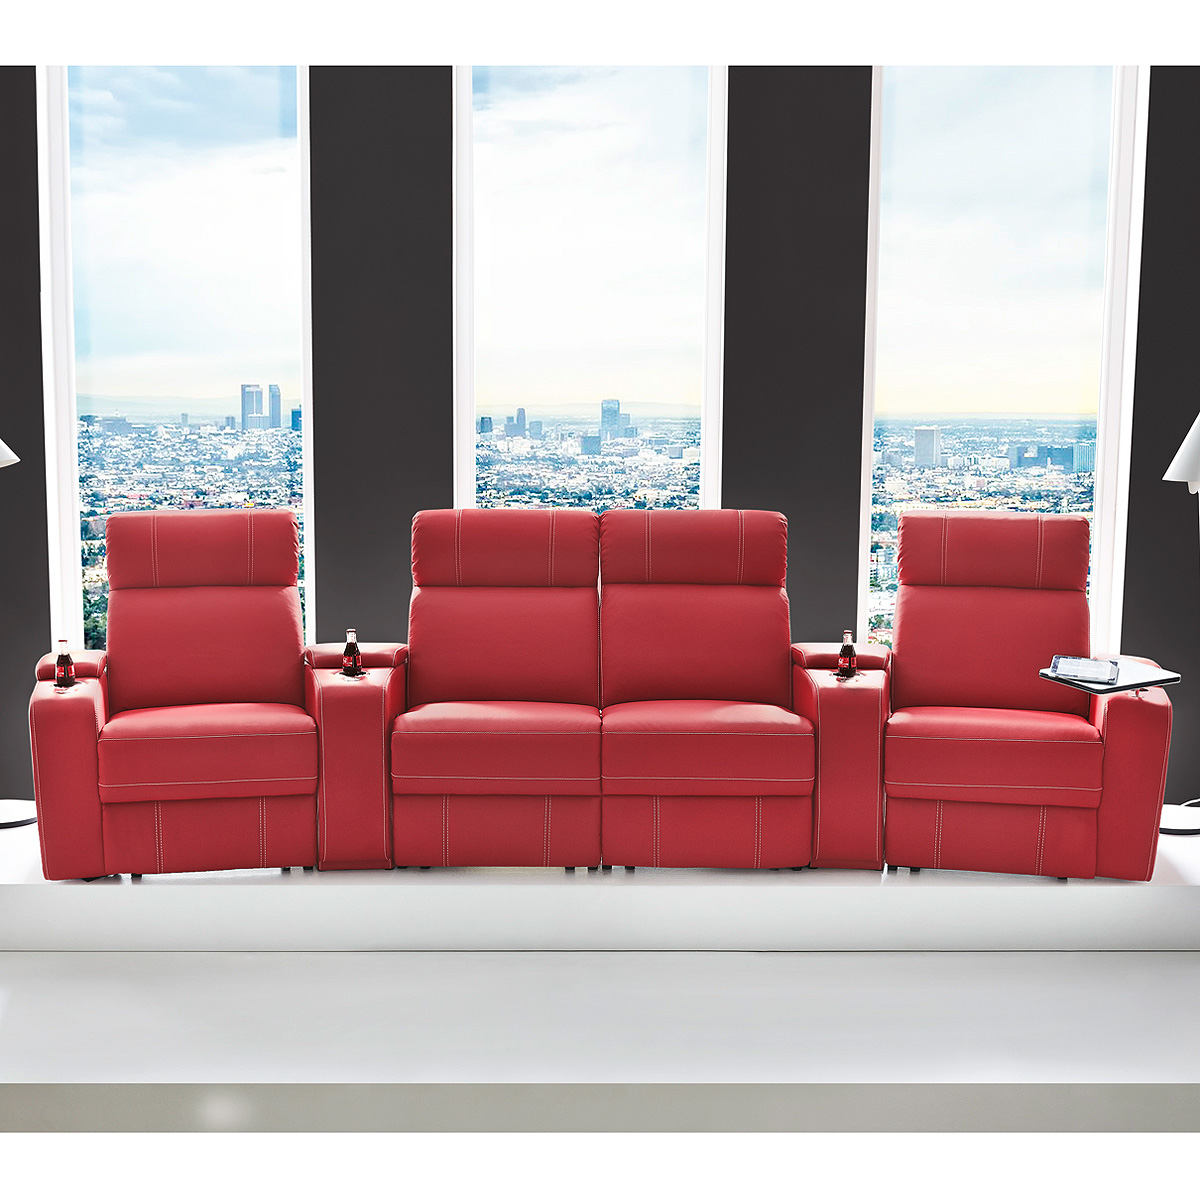 4er Cinema Sessel Cinema Sessel Hollywood 4er Kinosessel Kinosofa Sofa